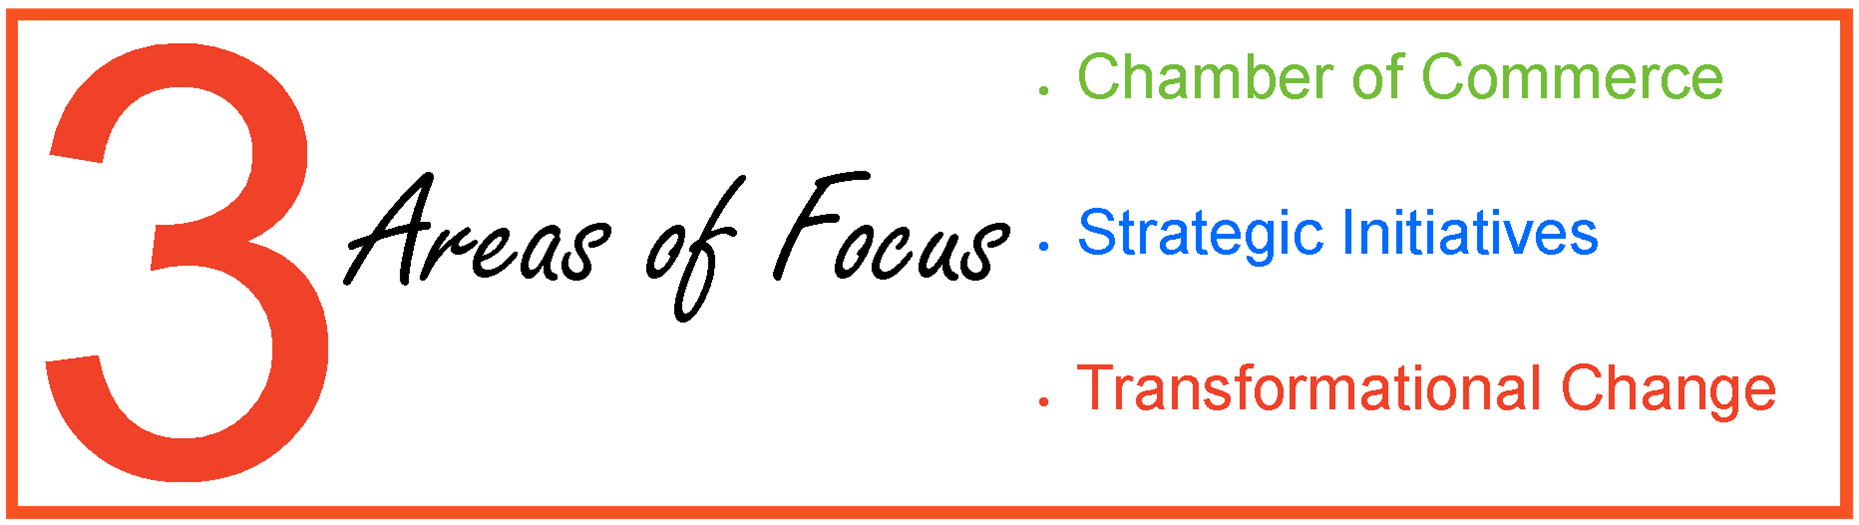 3-areas-of-focus-for-web.png